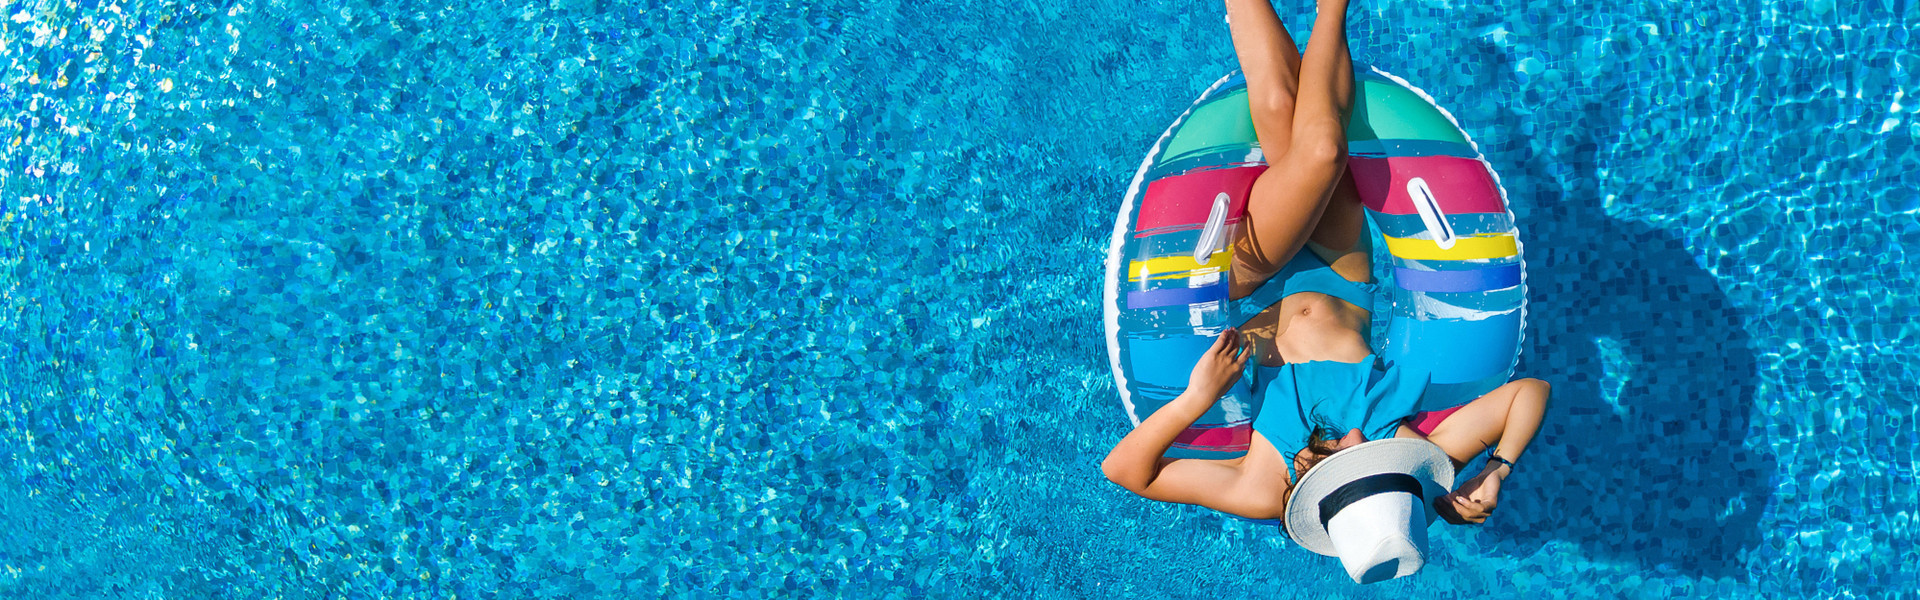 Floating by the poolside bar | Poolside Resorts in Orlando, FL | Westgate Lakes Resort & Spa